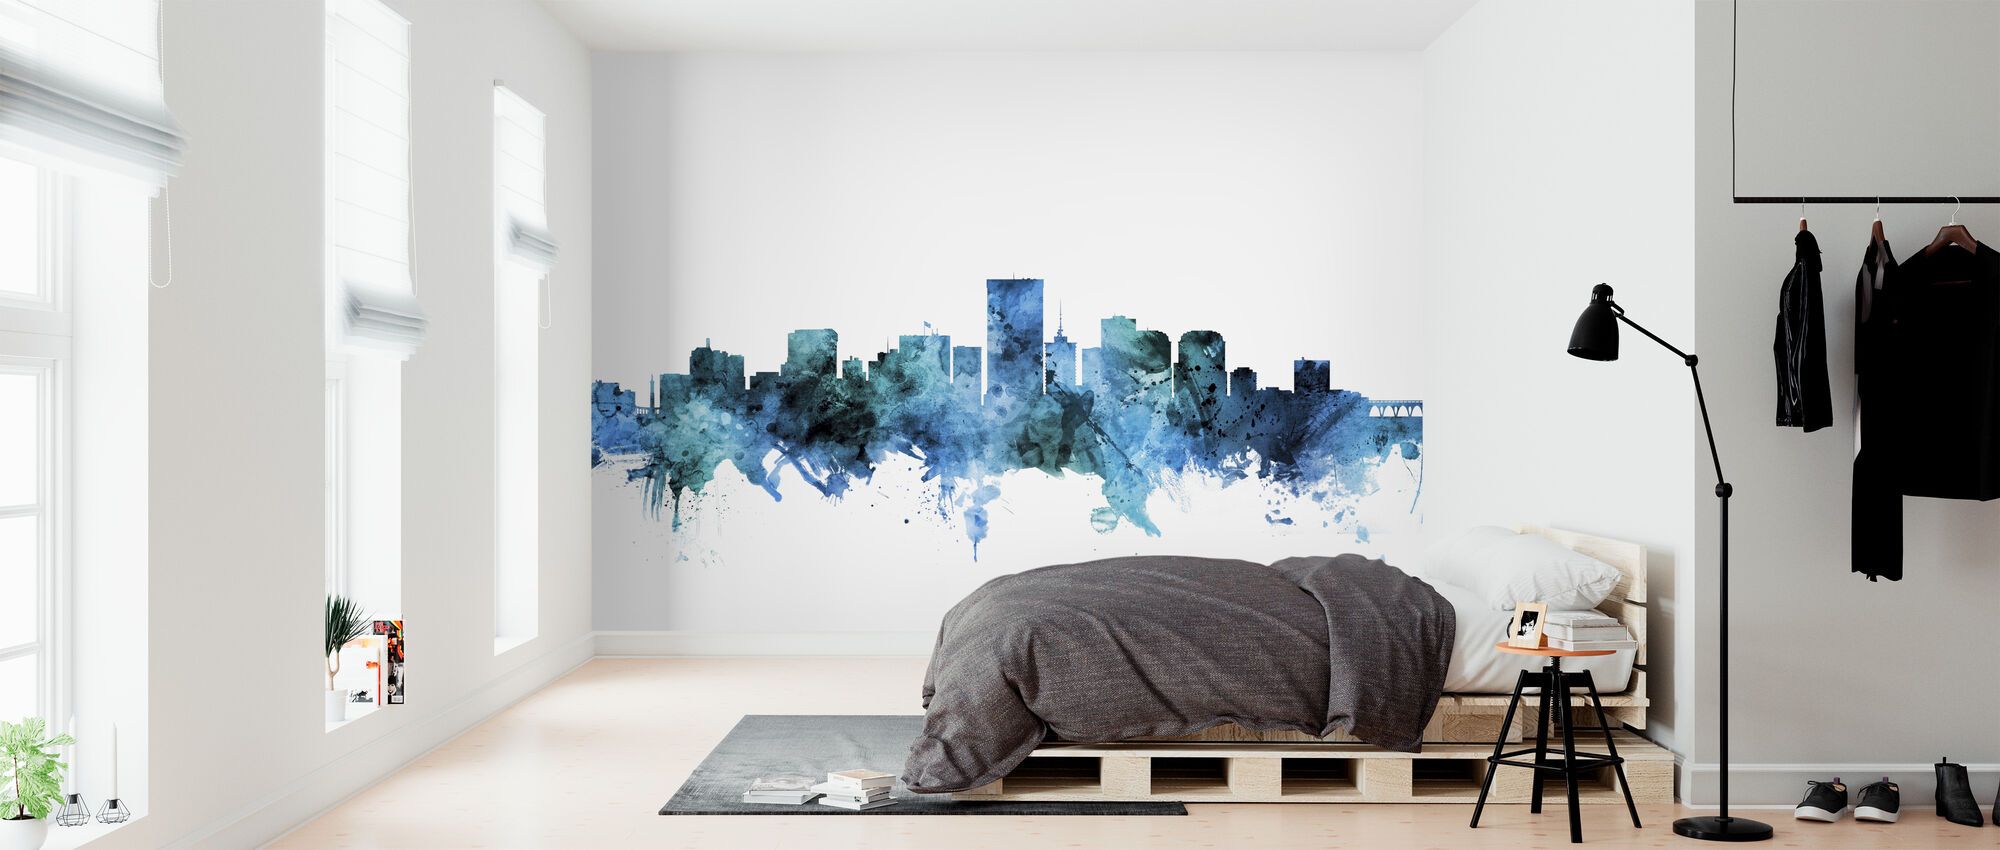 Richmond Virginia Skyline - Wallpaper - Bedroom